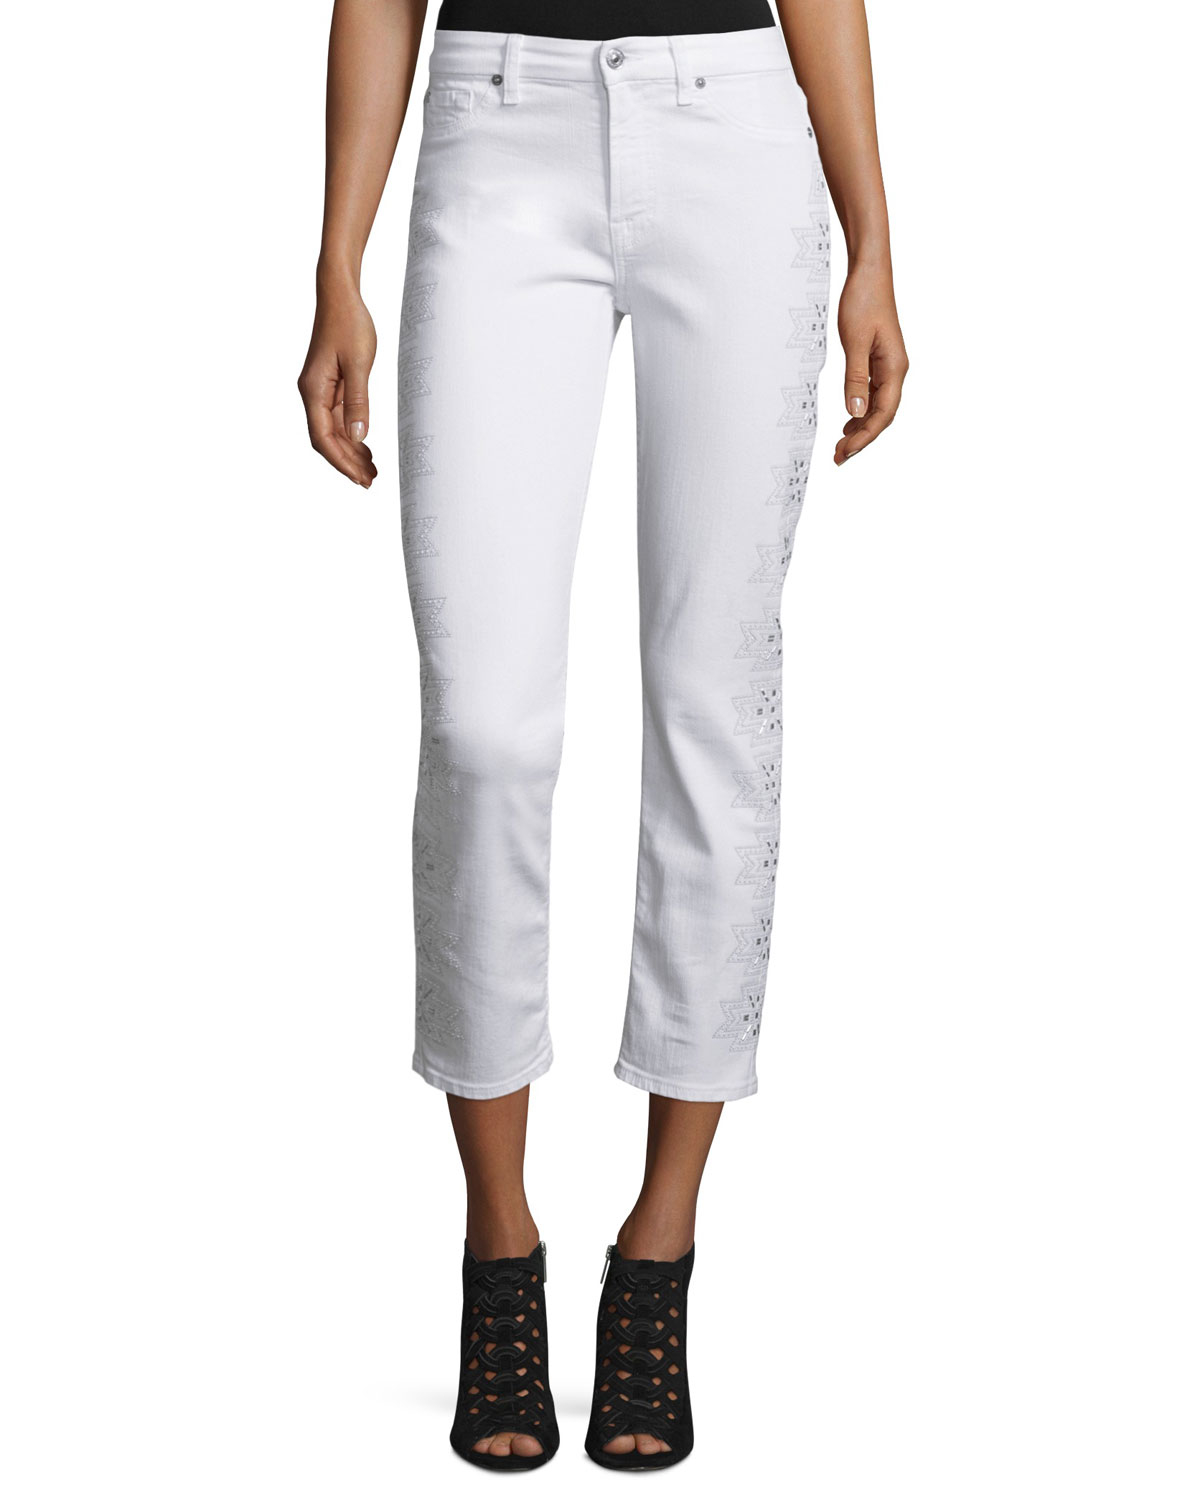 For all mankind kimmie embroidered outseam cropped jeans